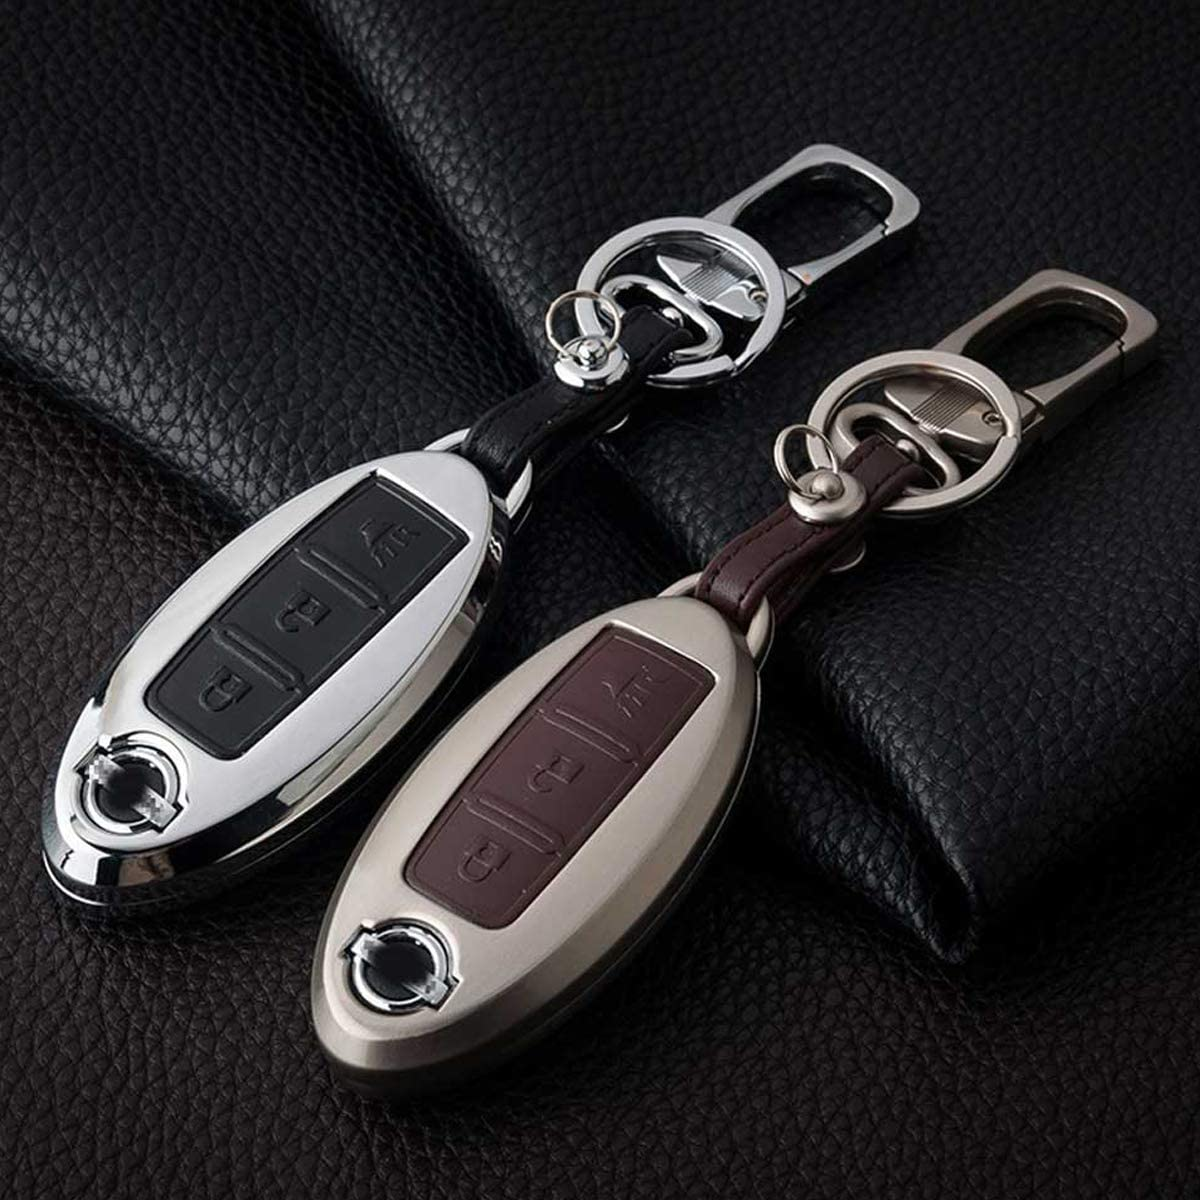 MODIPIM Keyless Entry Remote Case Leather Key Fob Cover Zinc Alloy Key Holder Shell Covers With Key Chain For Nissan Rogue Altima Maxima Qashqai 3 Button Color Black